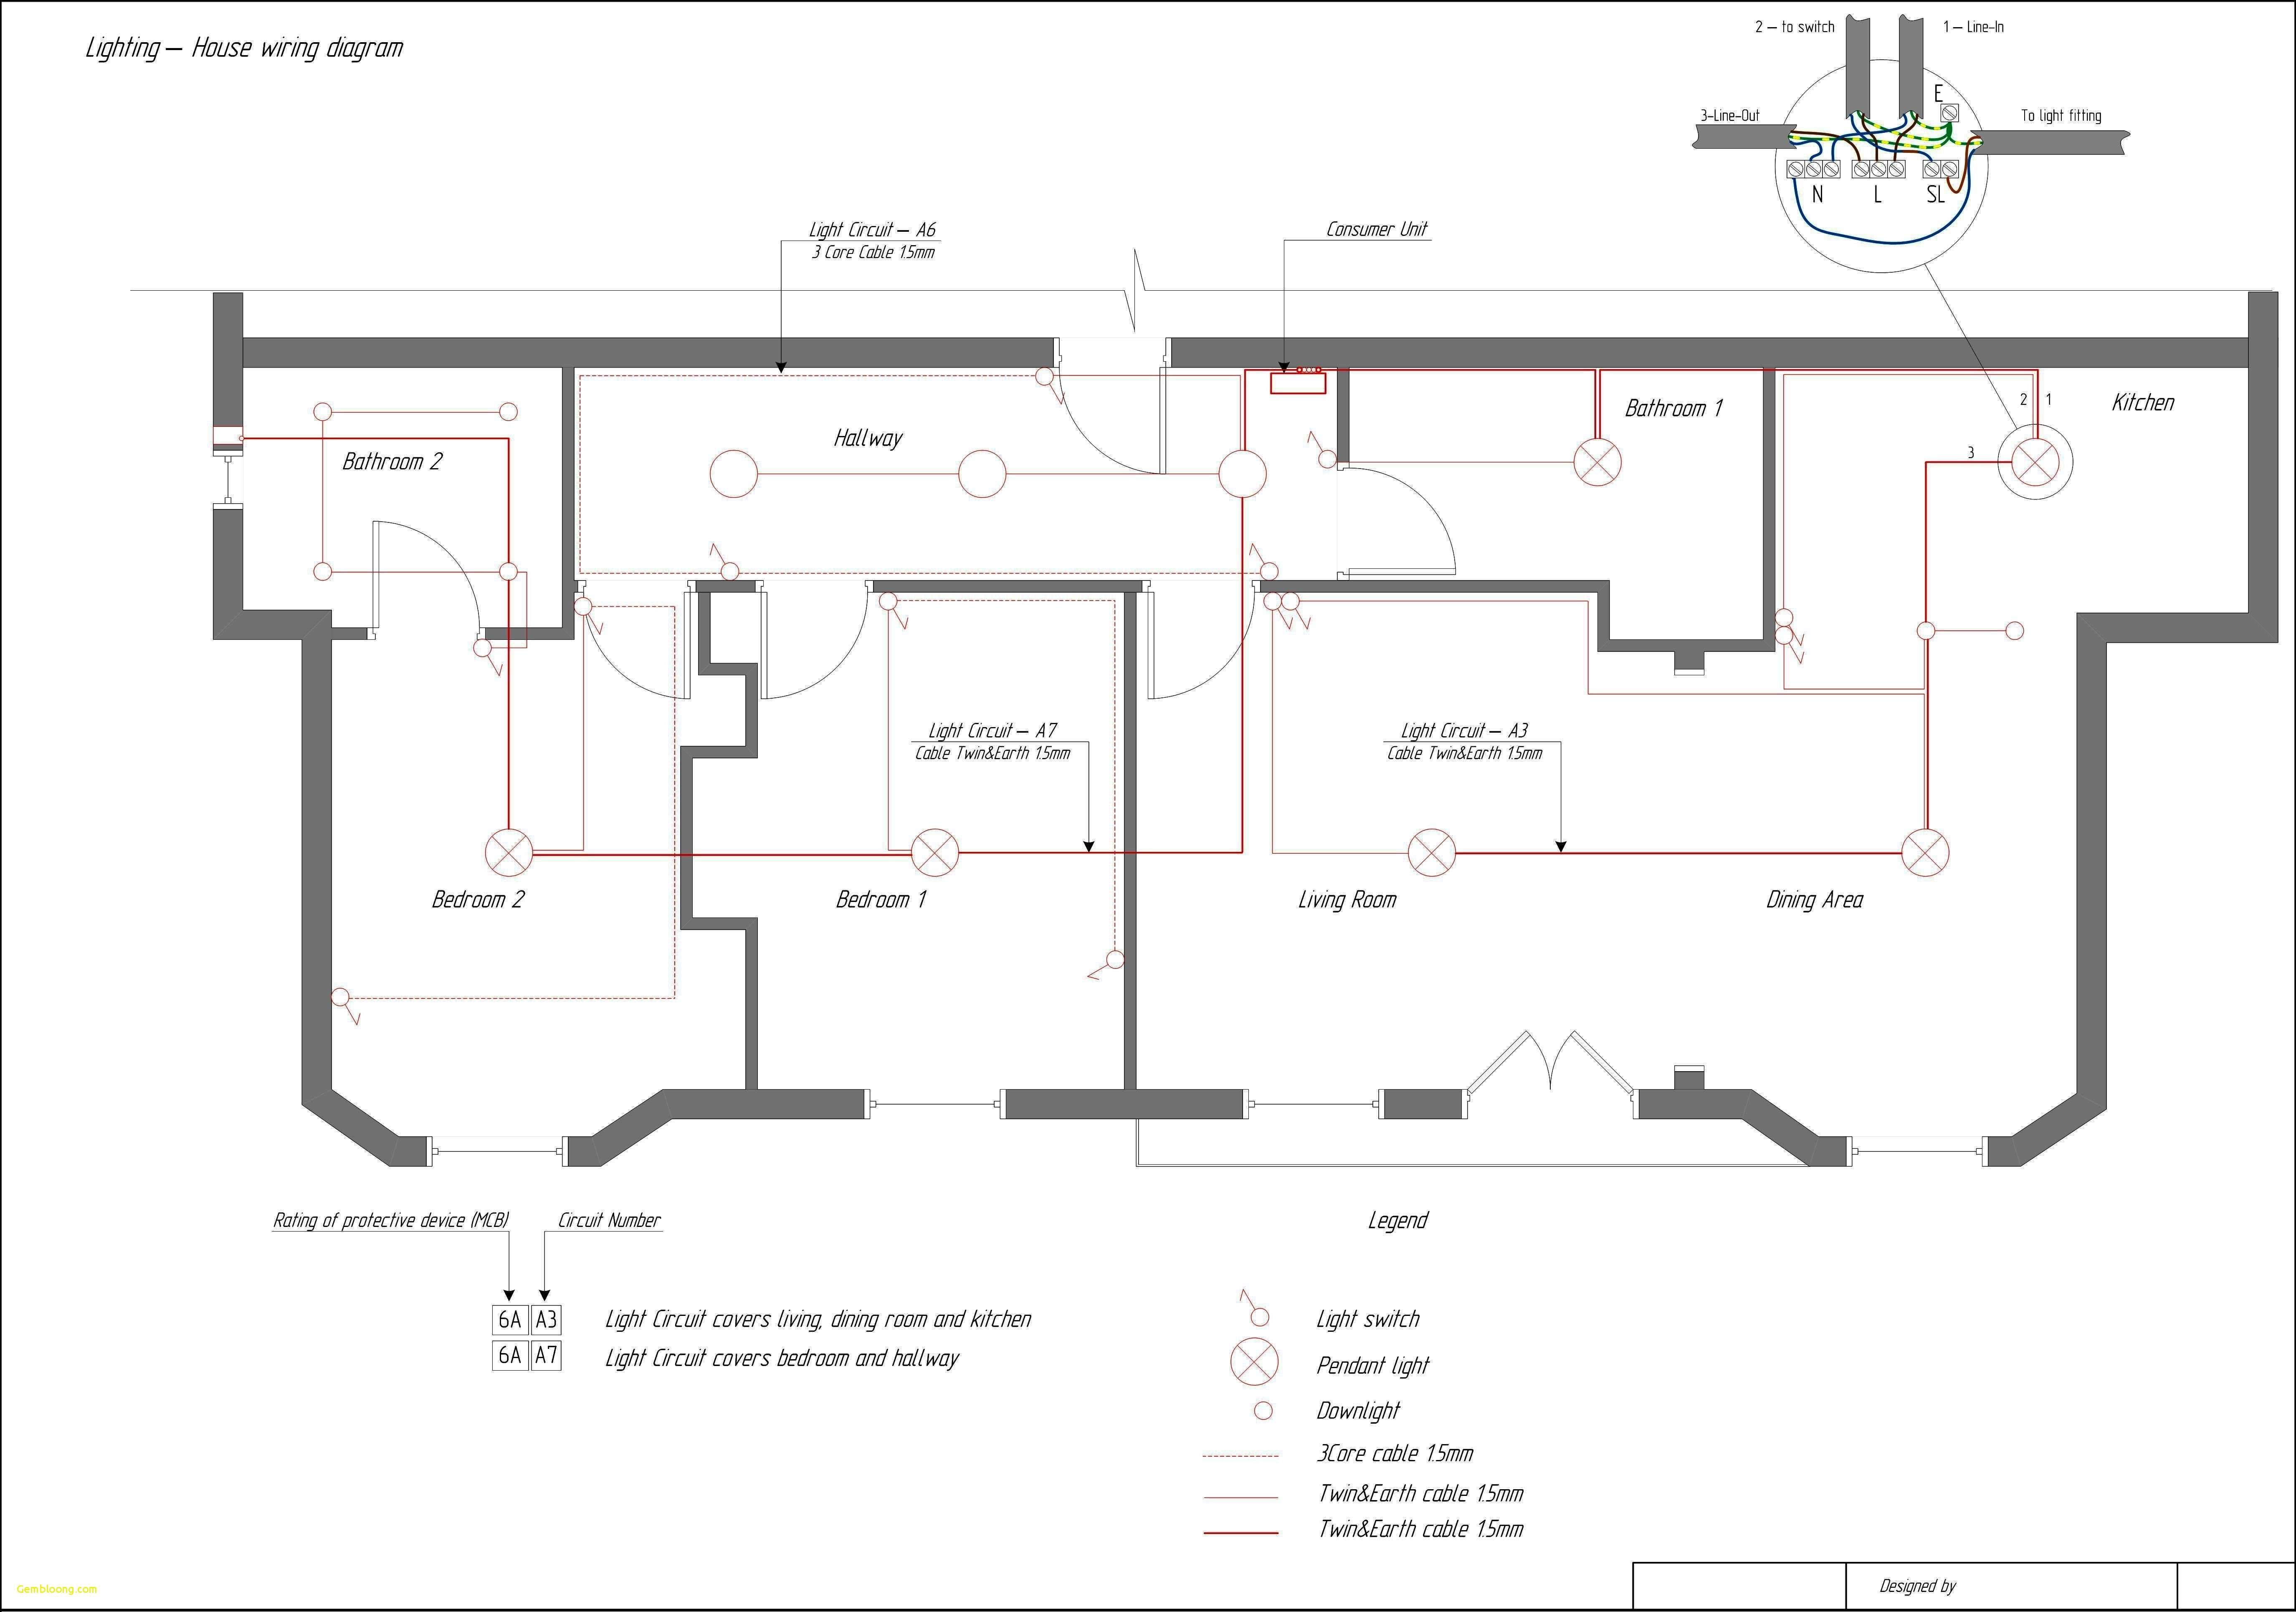 Wiring Diagram Bathroom Lovely Wiring Diagram Bathroom Bathroom Fan Light Wiring Diagram Mikul House Wiring Electrical Circuit Diagram Home Electrical Wiring